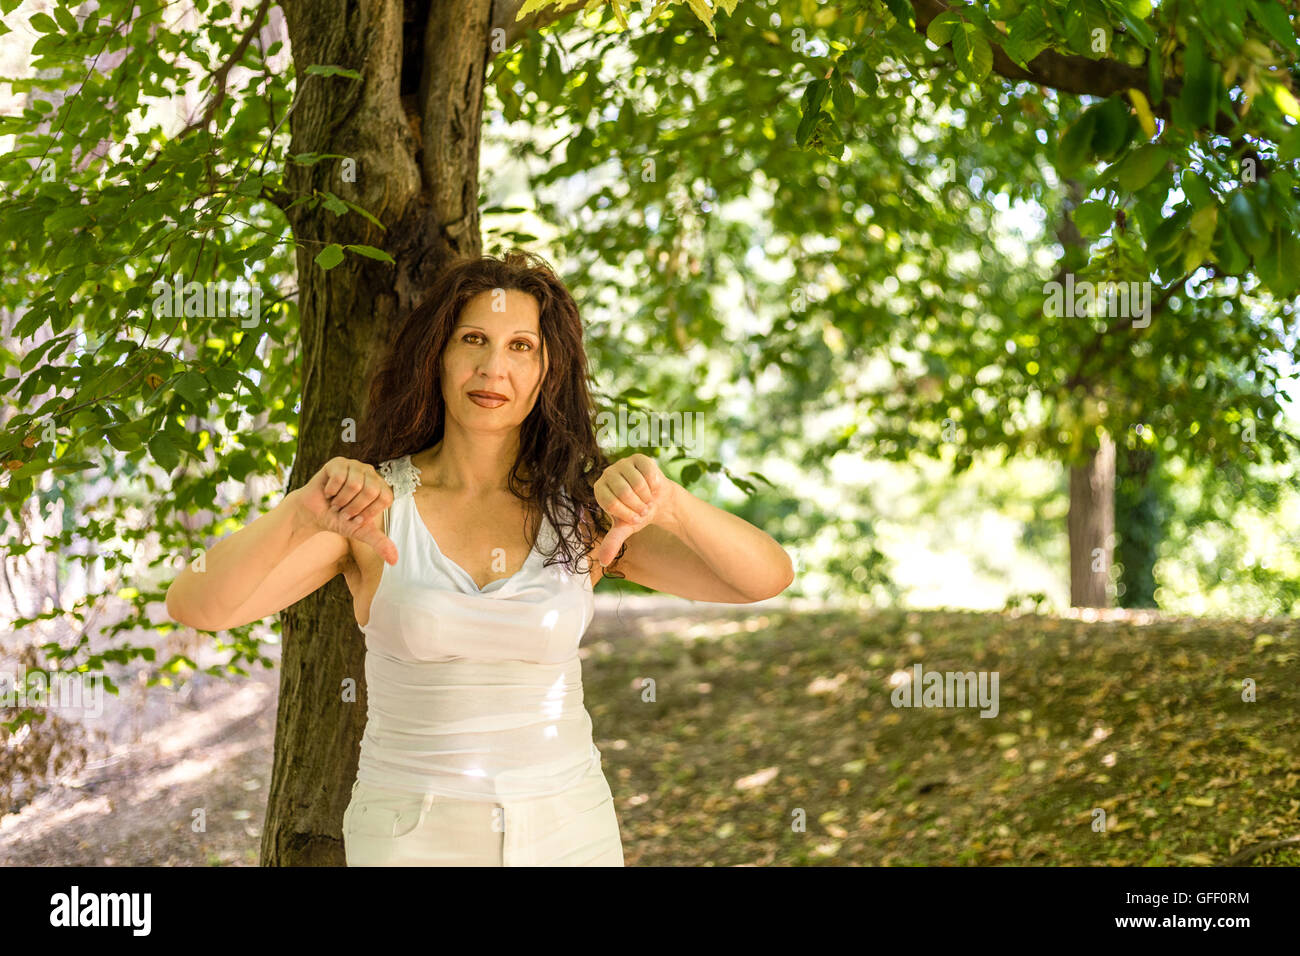 Busty Classy Mature Woman Giving Thumbs Down Gesture Looking At The Camera Against Green Garden Background